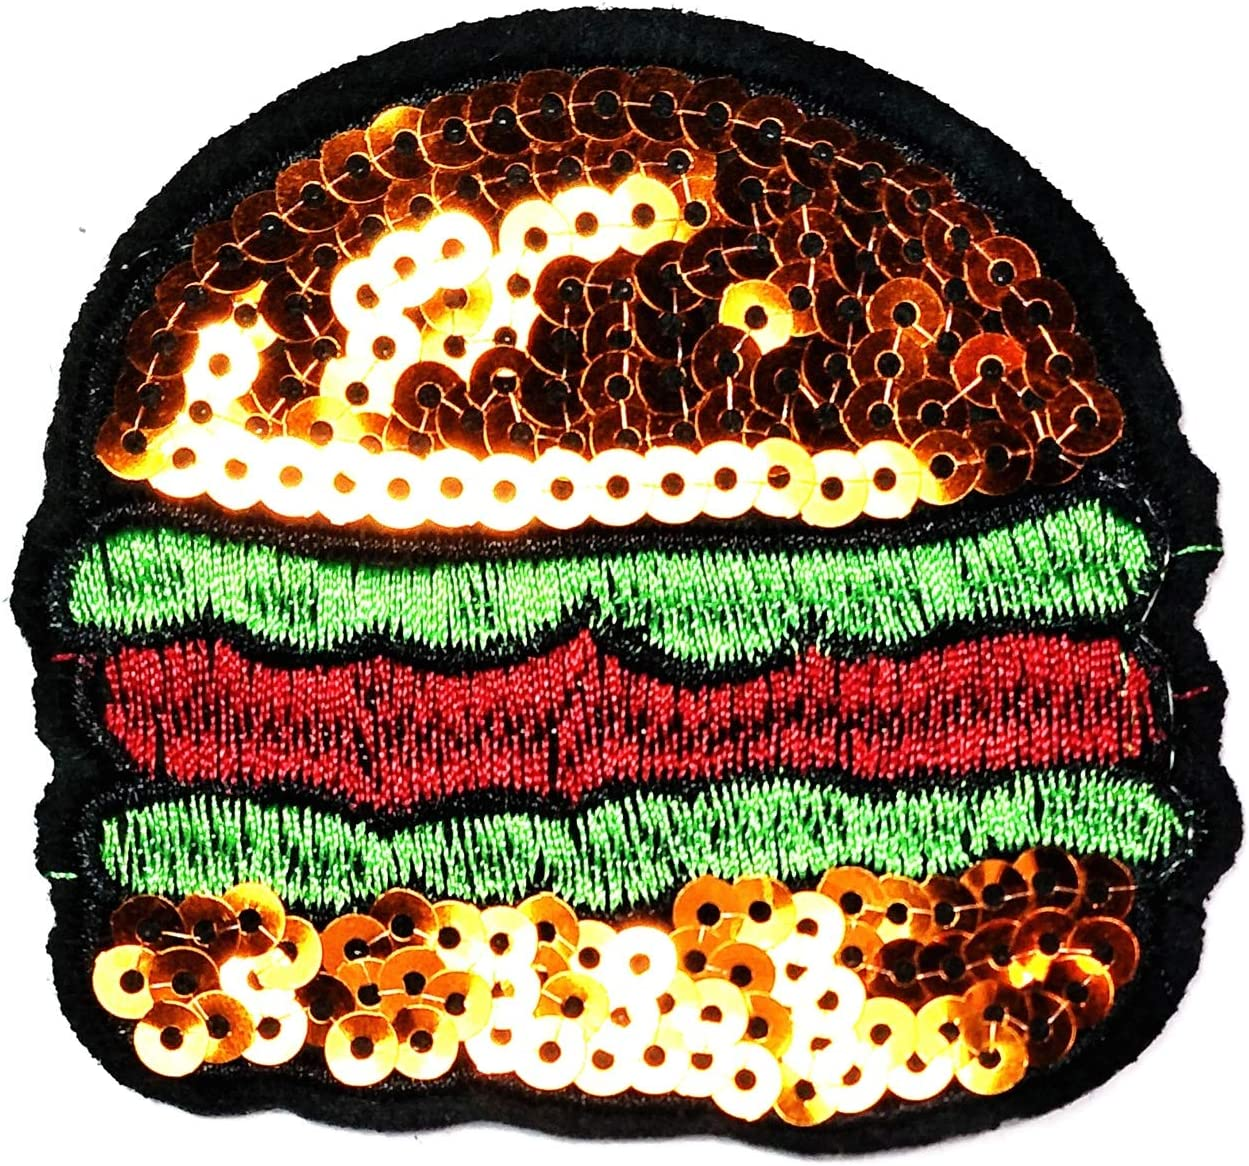 England Food Hamburger Iron Sew On Embroidered Applique for Clothes Patch Cartoon Cheeseburger Hamburger Burger Fastfood Food Kids Sticker Patch (25)